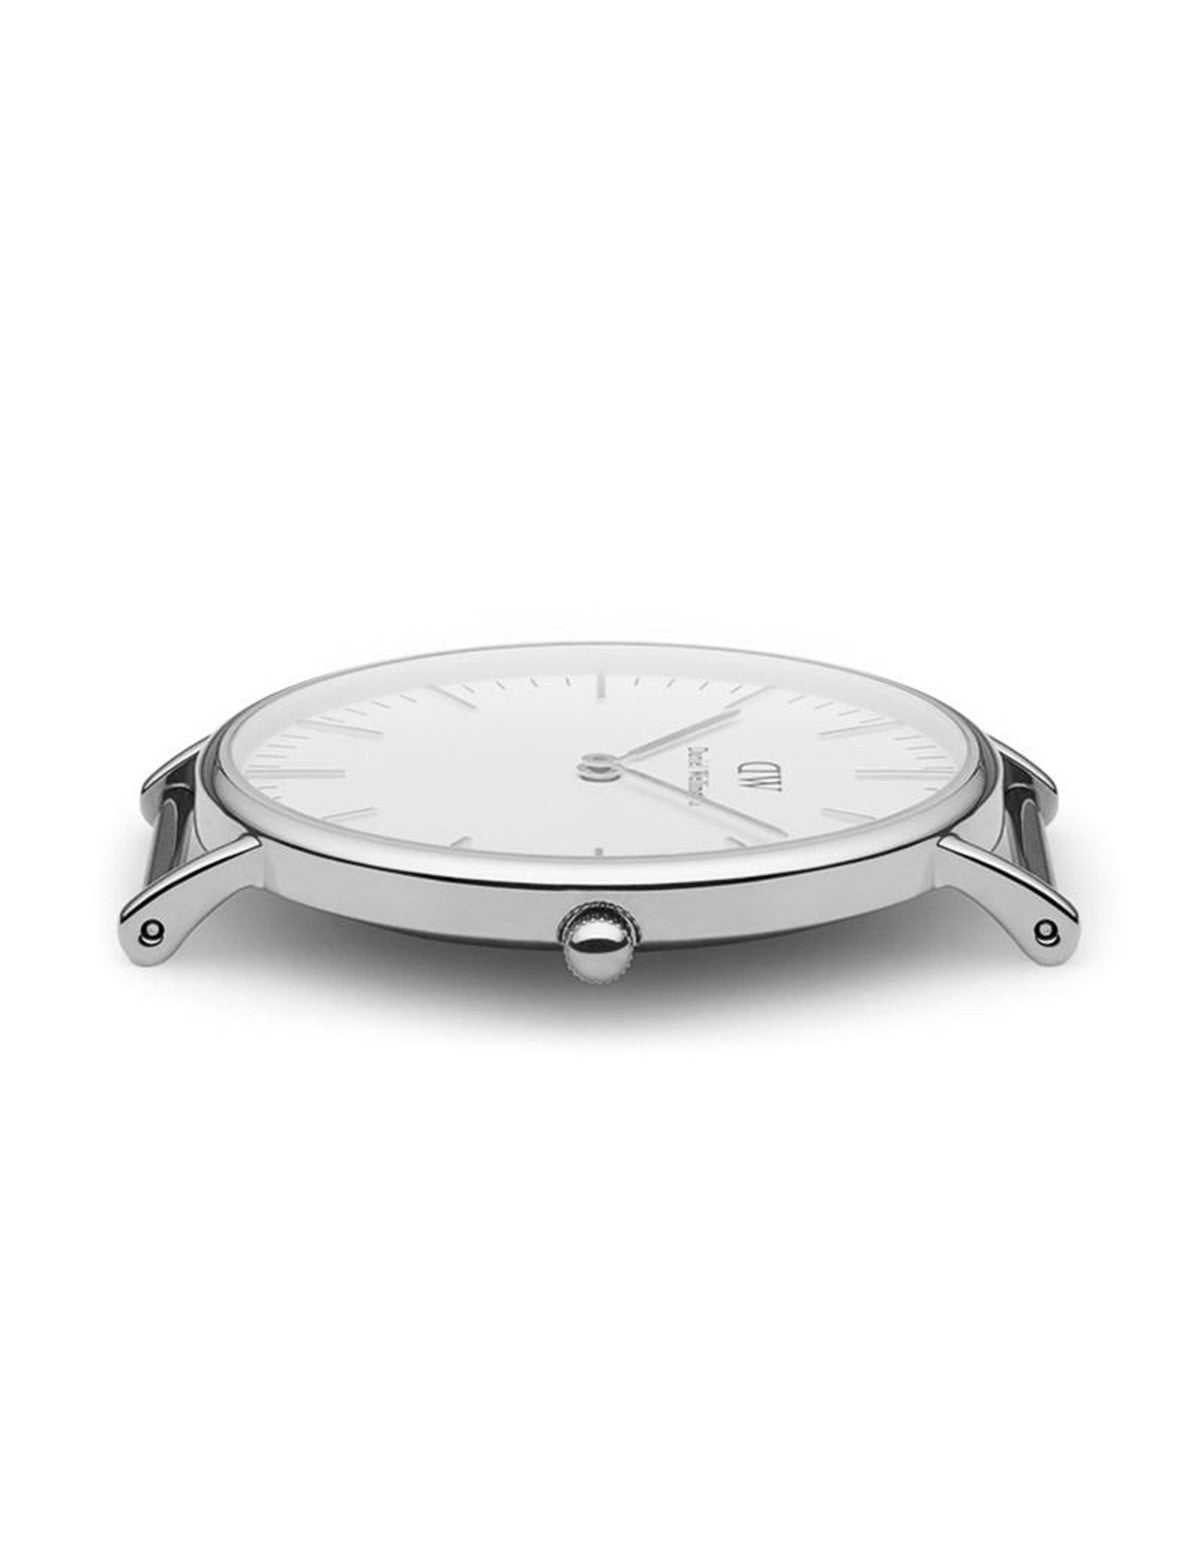 Daniel Wellington St. Andrews Watch Silver 40mm - Still Life - 4